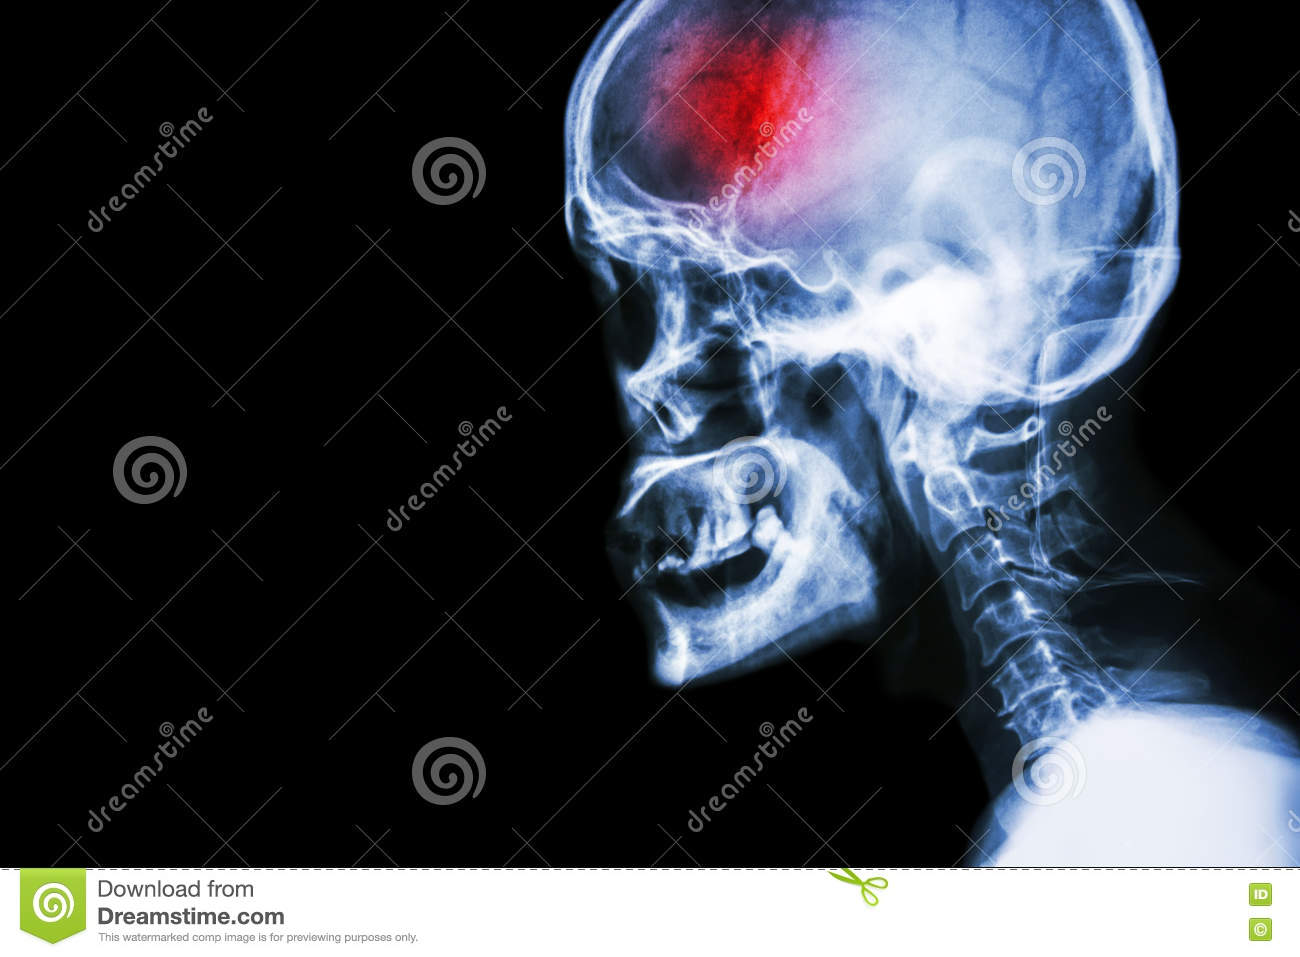 Stroke . film x-ray skull and cervical spine lateral view and stroke . cerebrovascular accident . blank area at left side .